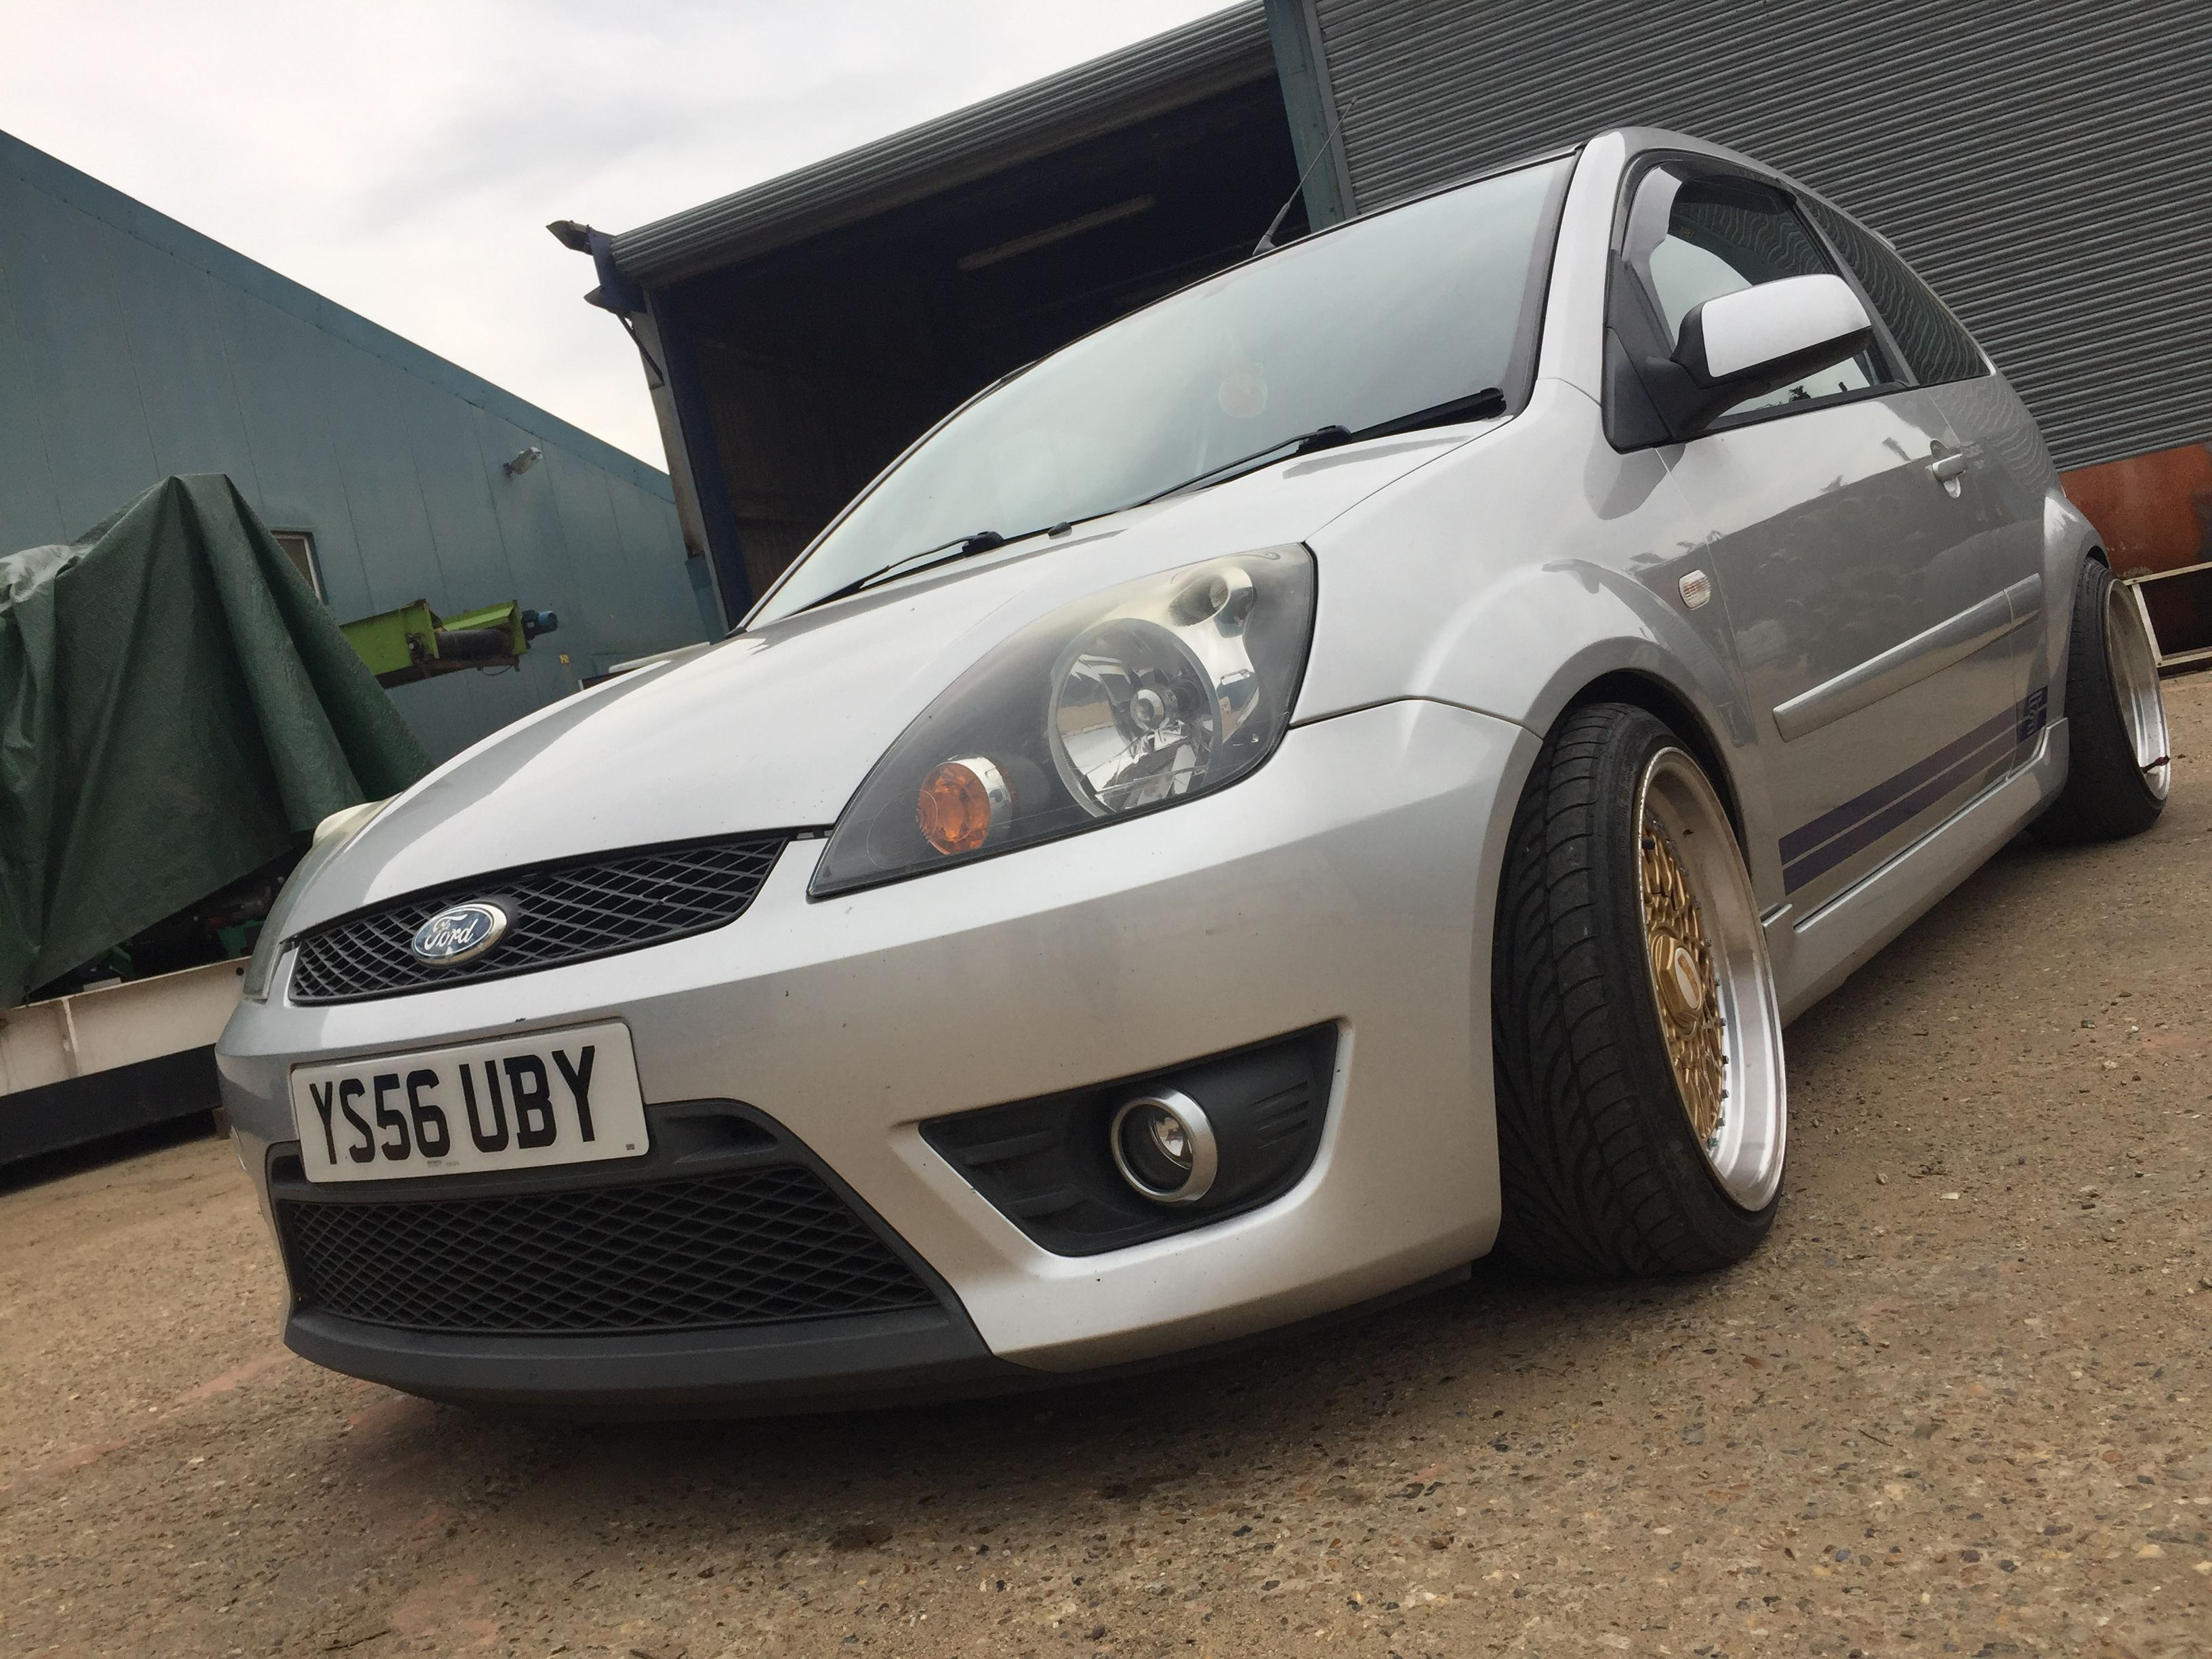 Ford Fiesta Mk6 St 150 Lowered On Coilovers Bbs Style 16 Inch